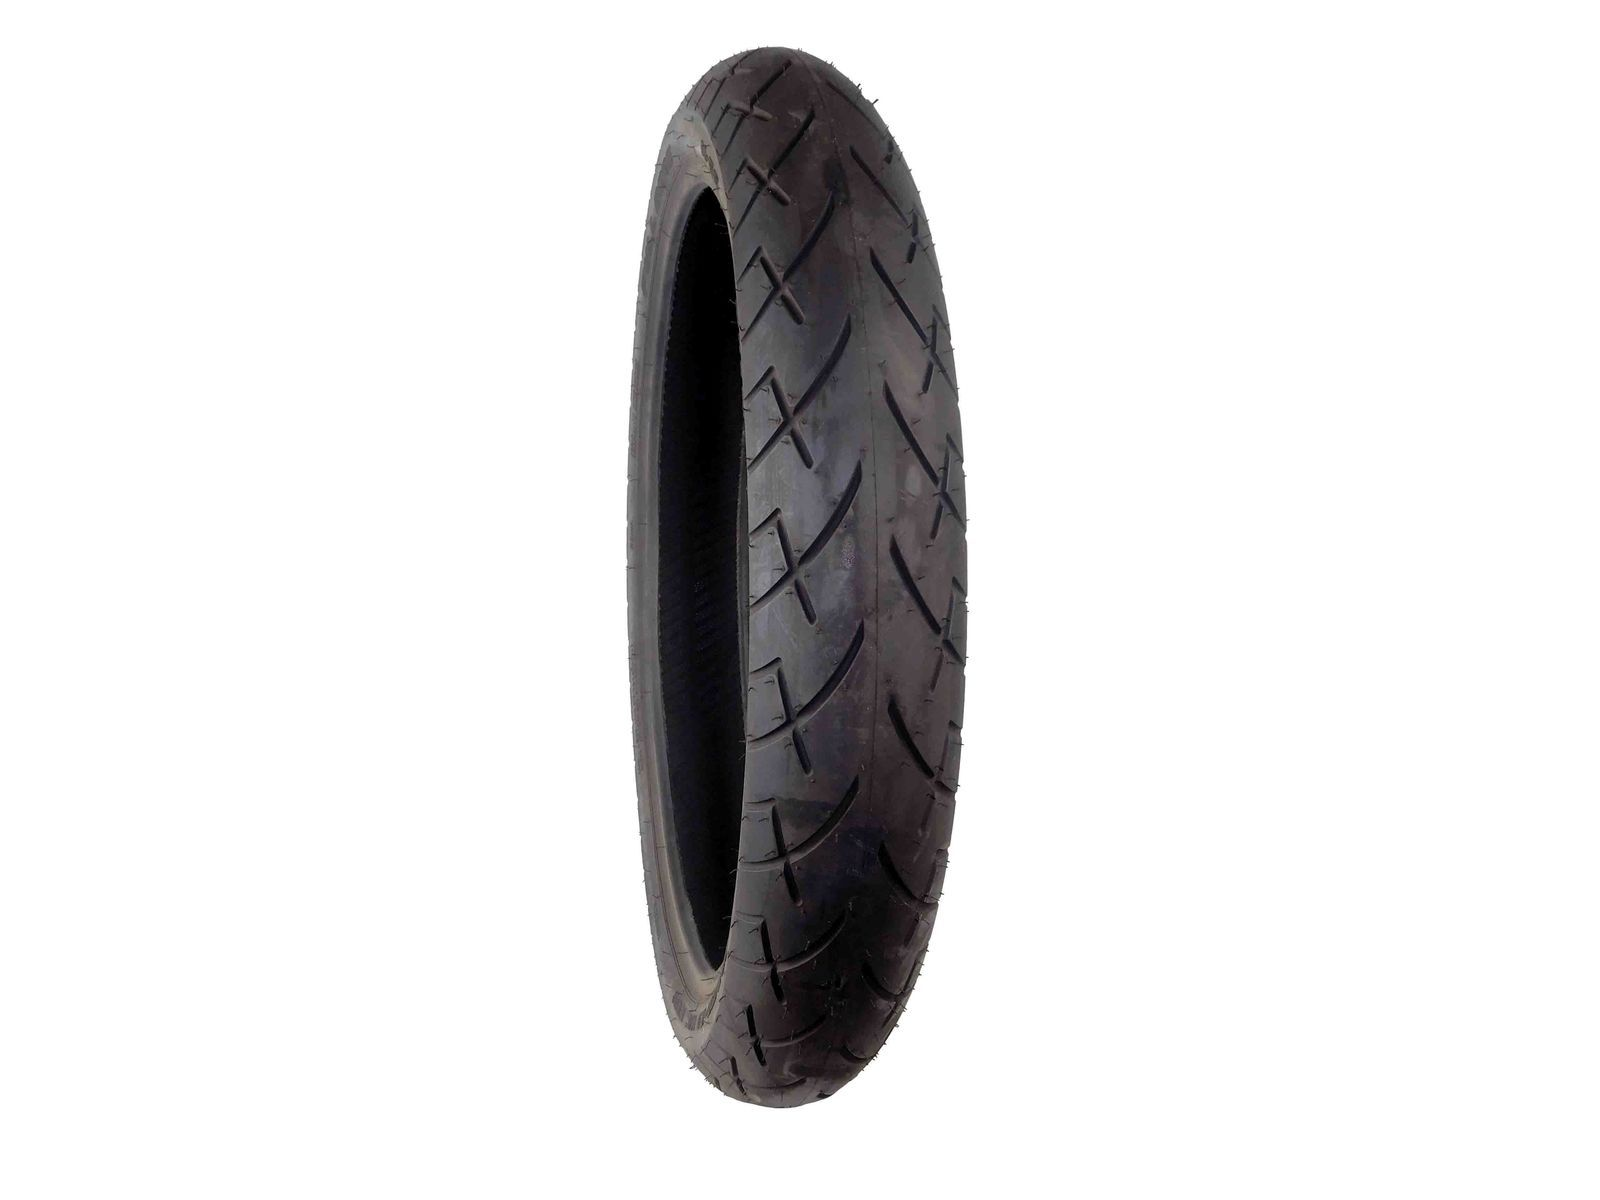 Full-Bore-120-70-21-Front-150-90-15-Rear-Set-Cruiser-Motorcycle-Tires-image-2